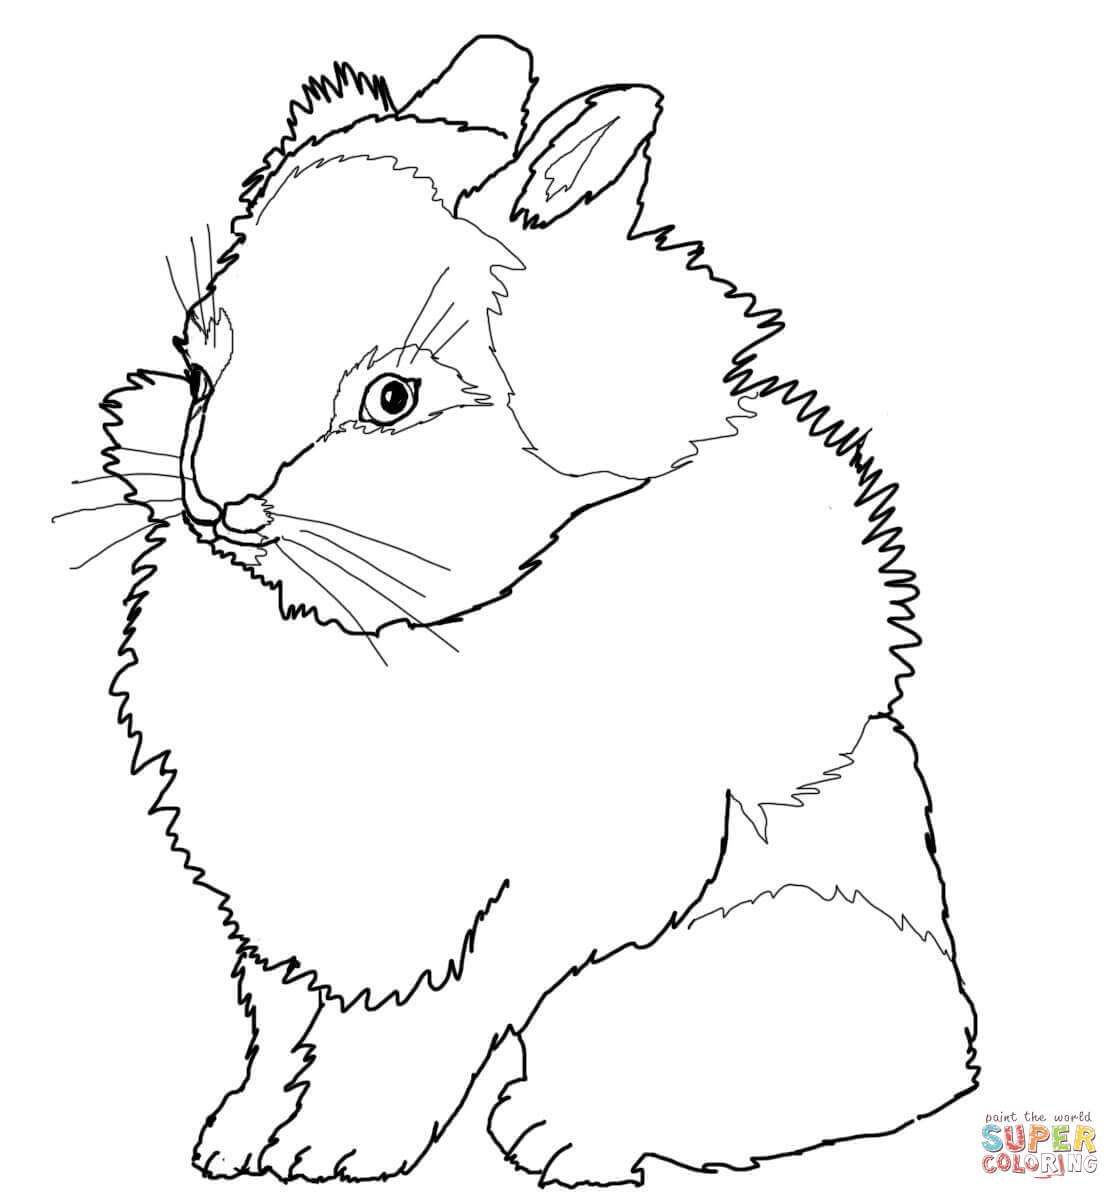 Bunny Rabbit Drawing at GetDrawings.com | Free for personal use ...